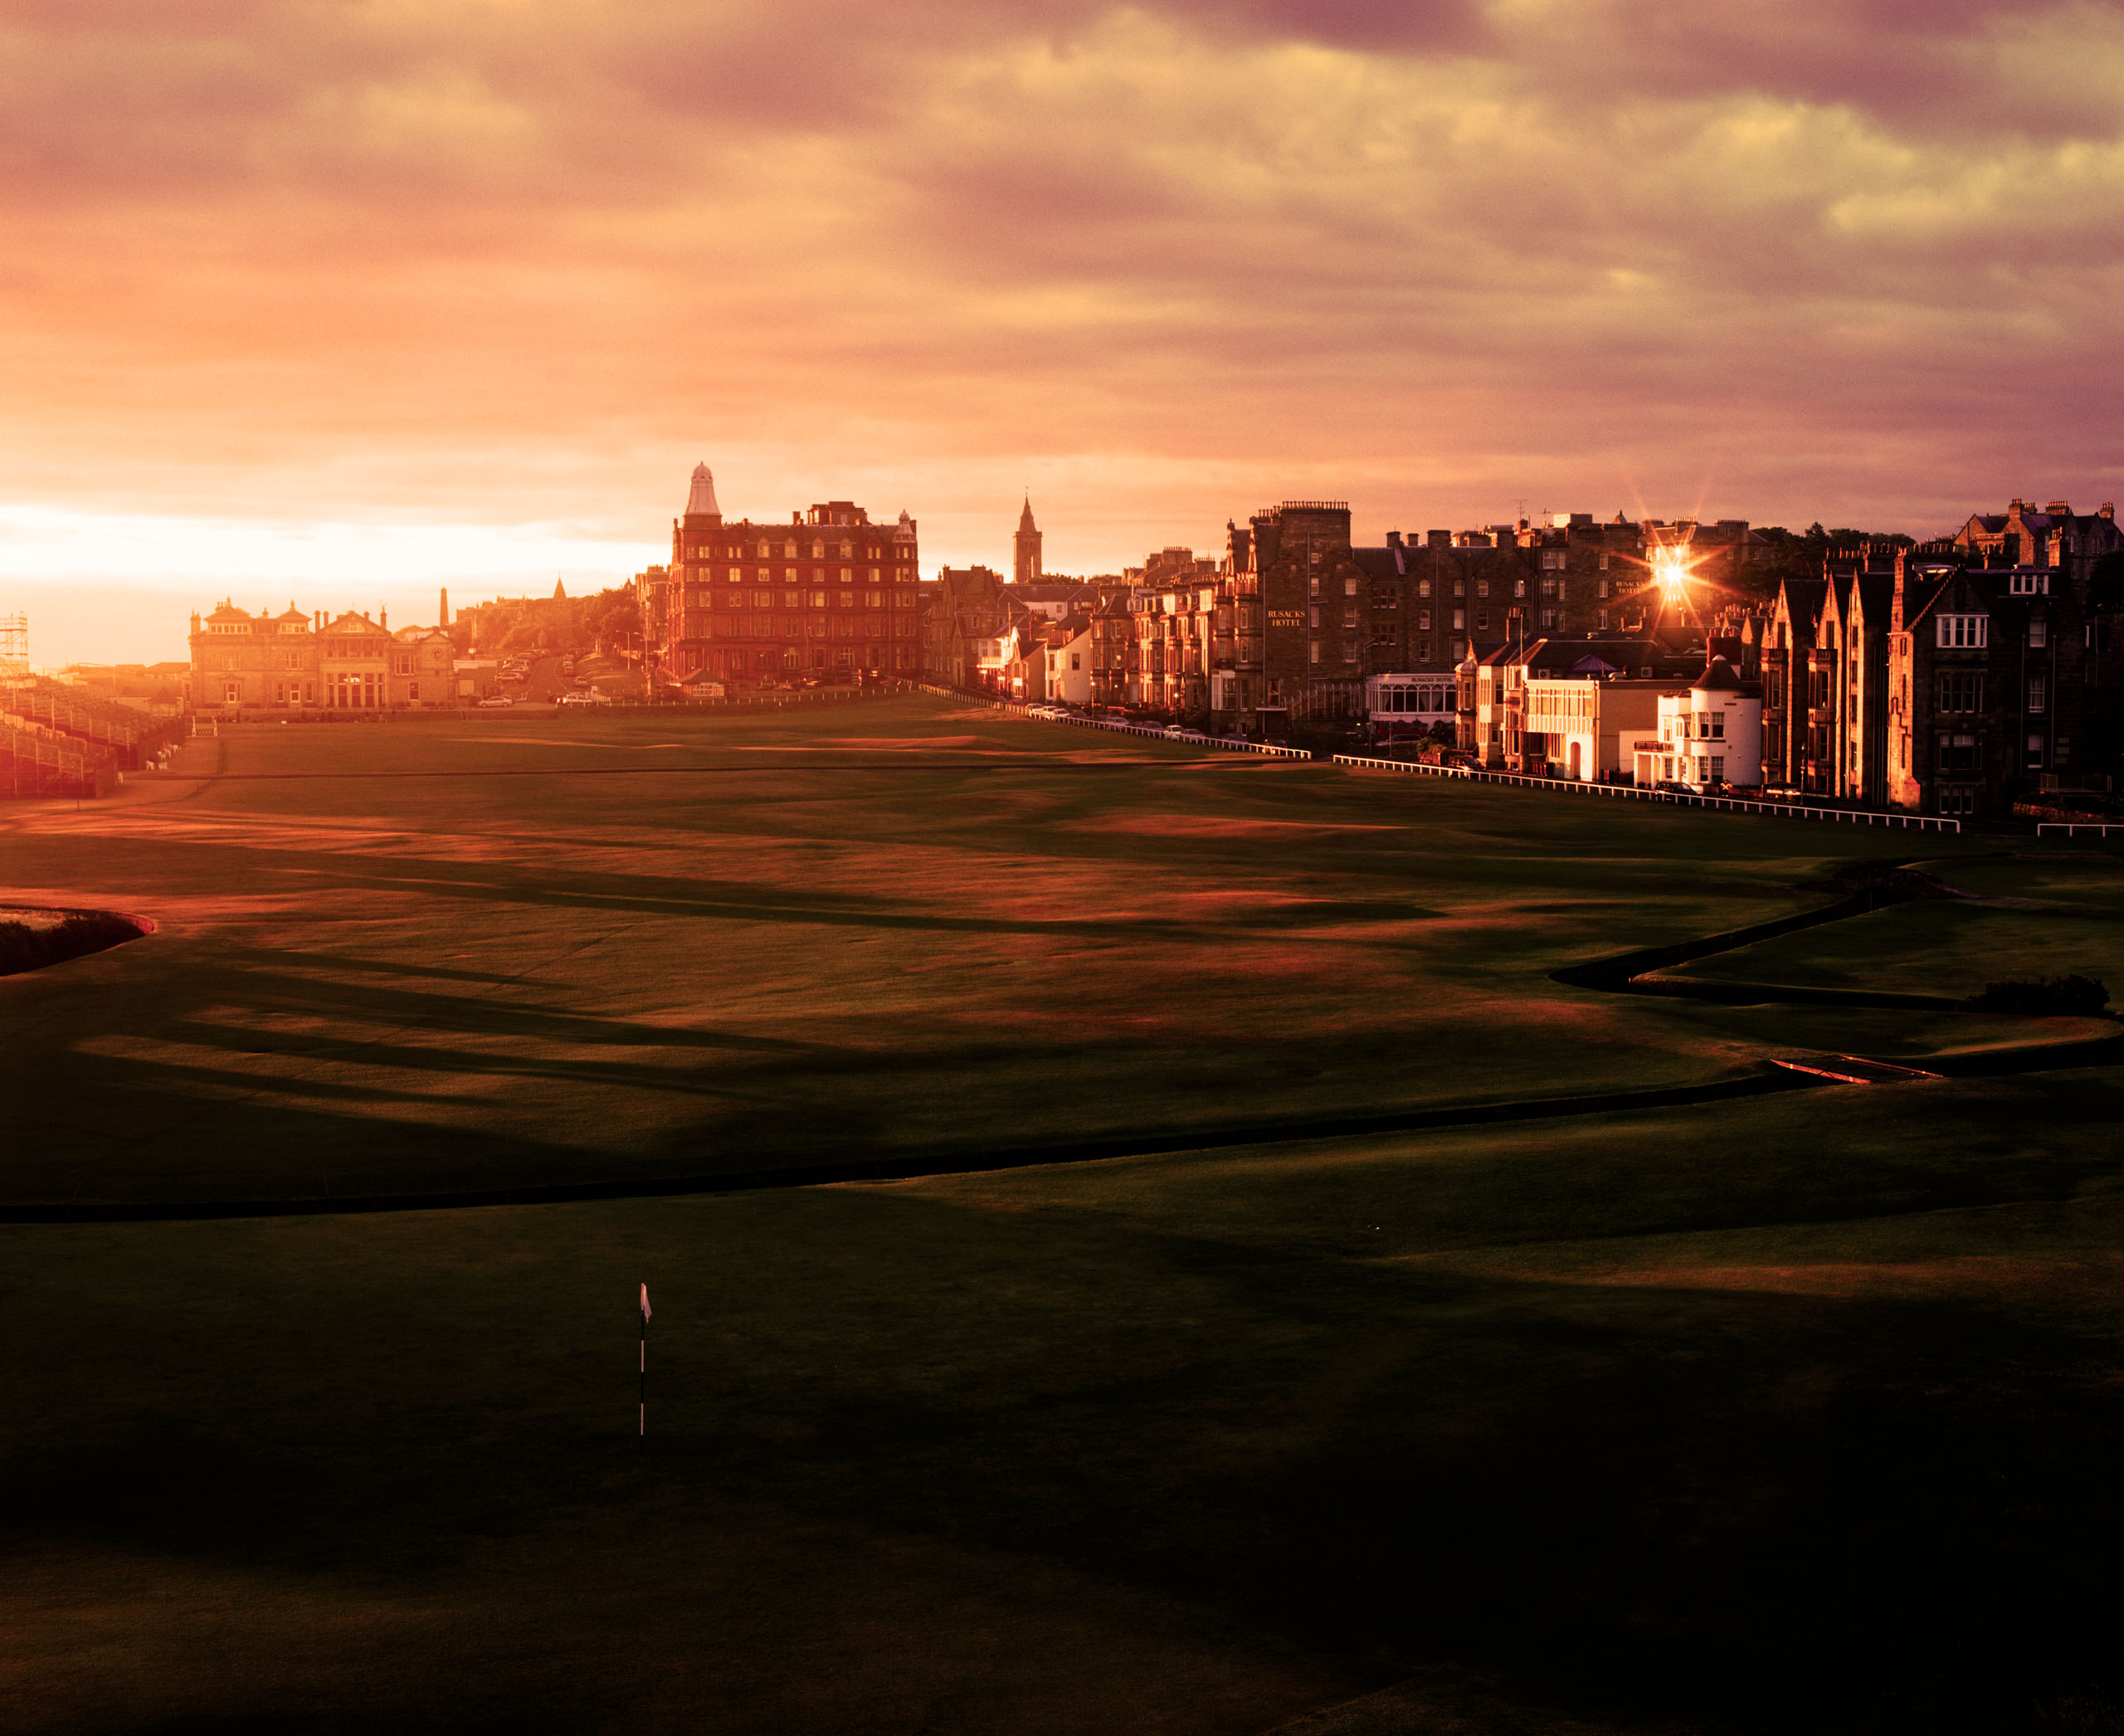 After I finished covering the Open Championship, I spent a week at St. Andrews. One day I climbed up the TV tower with my camera and positioned myself. It was too cloudy and I was about to give up the shot when the clouds parted and the light started shining through. I don't know how many times I have been to St. Andrews over the years, and the weather can be bad most days. But sometimes there's a thing called luck. Photo by Taku Miyamoto